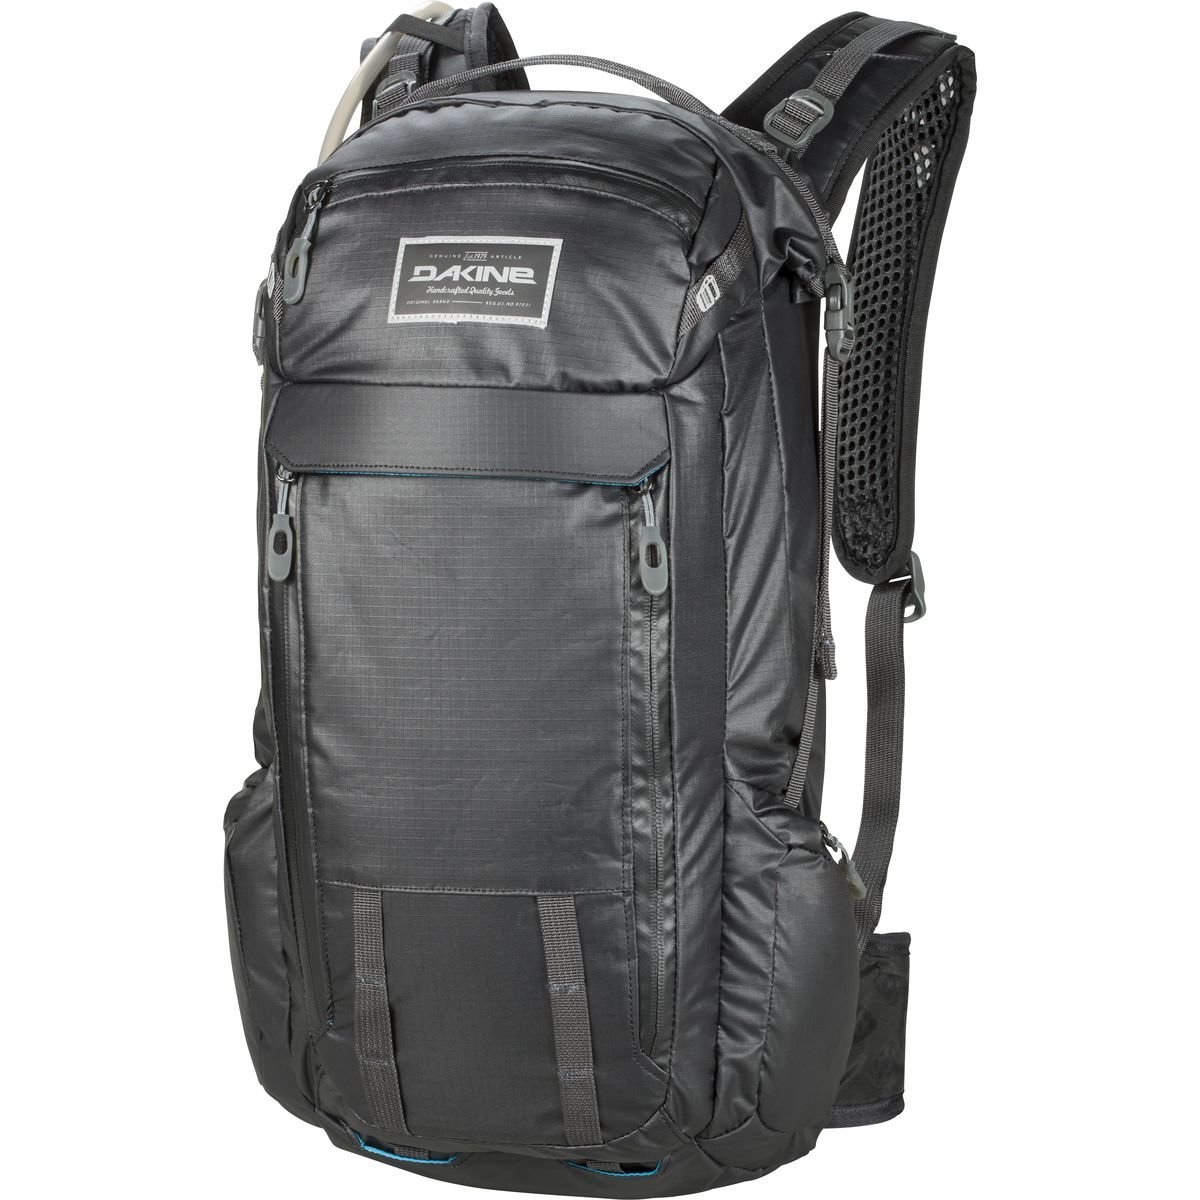 DAKINE Seeker 15L Hydration Pack Without Protector Black, One Size